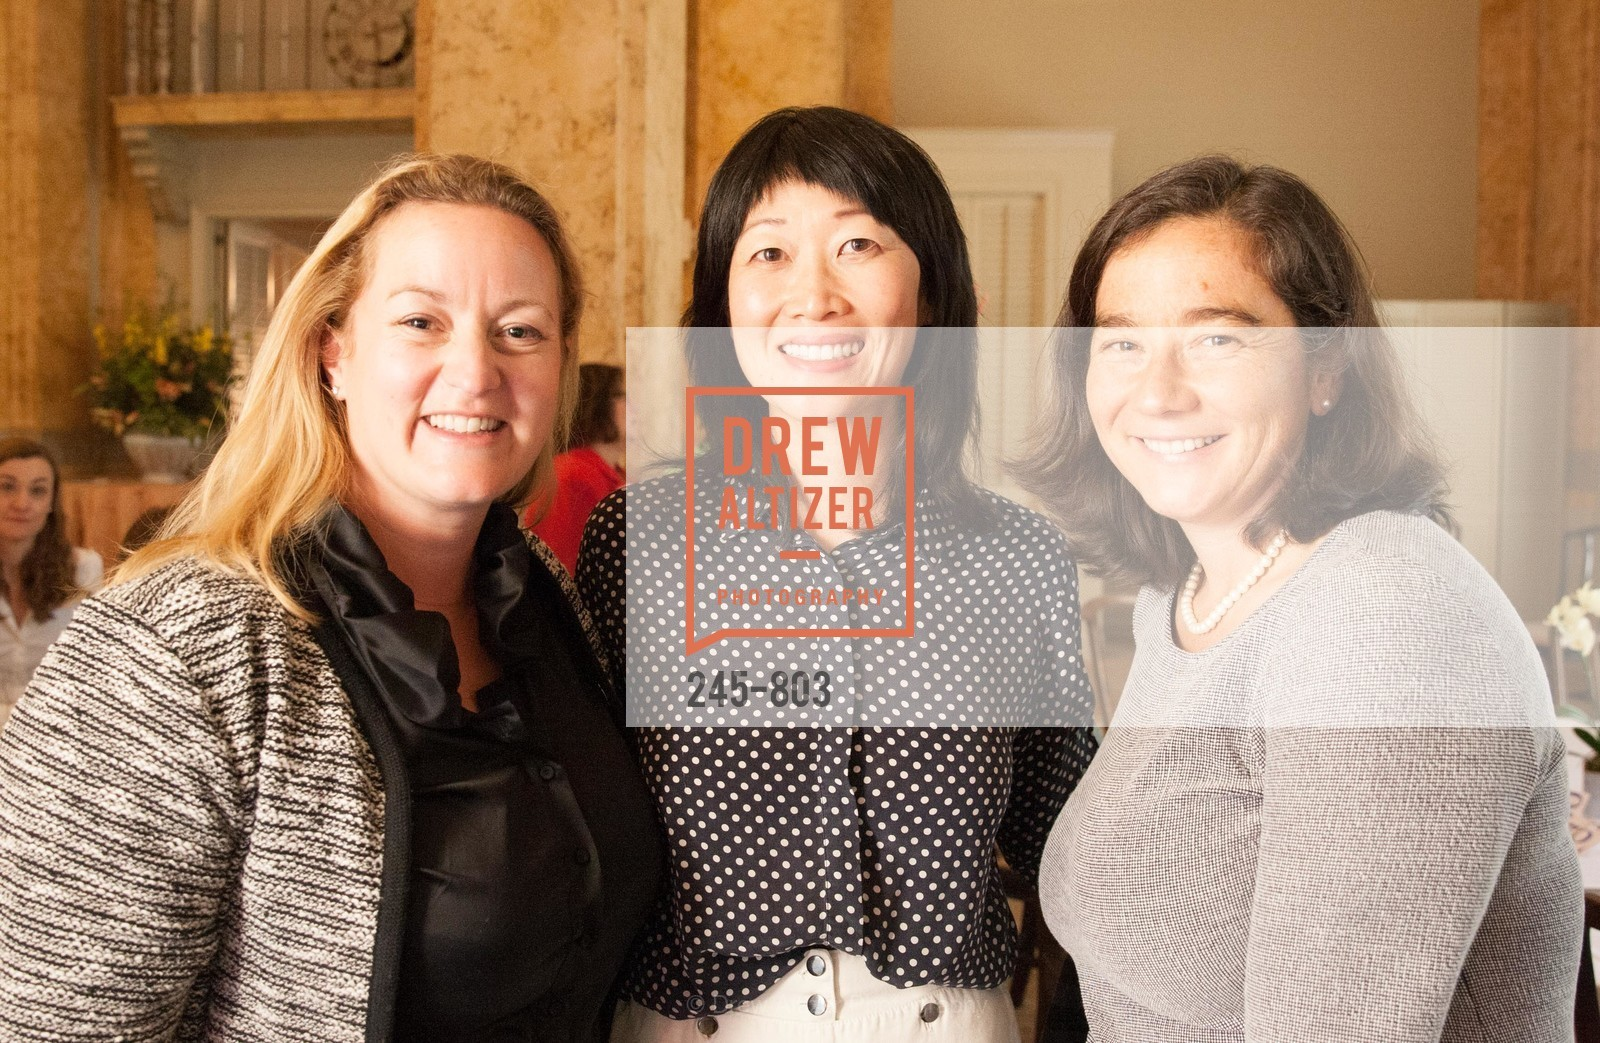 Candy Cohen, Julia Kim, Katy Ettinger, BURKE'S Alumnae Luncheon, US, April 25th, 2015,Drew Altizer, Drew Altizer Photography, full-service agency, private events, San Francisco photographer, photographer california